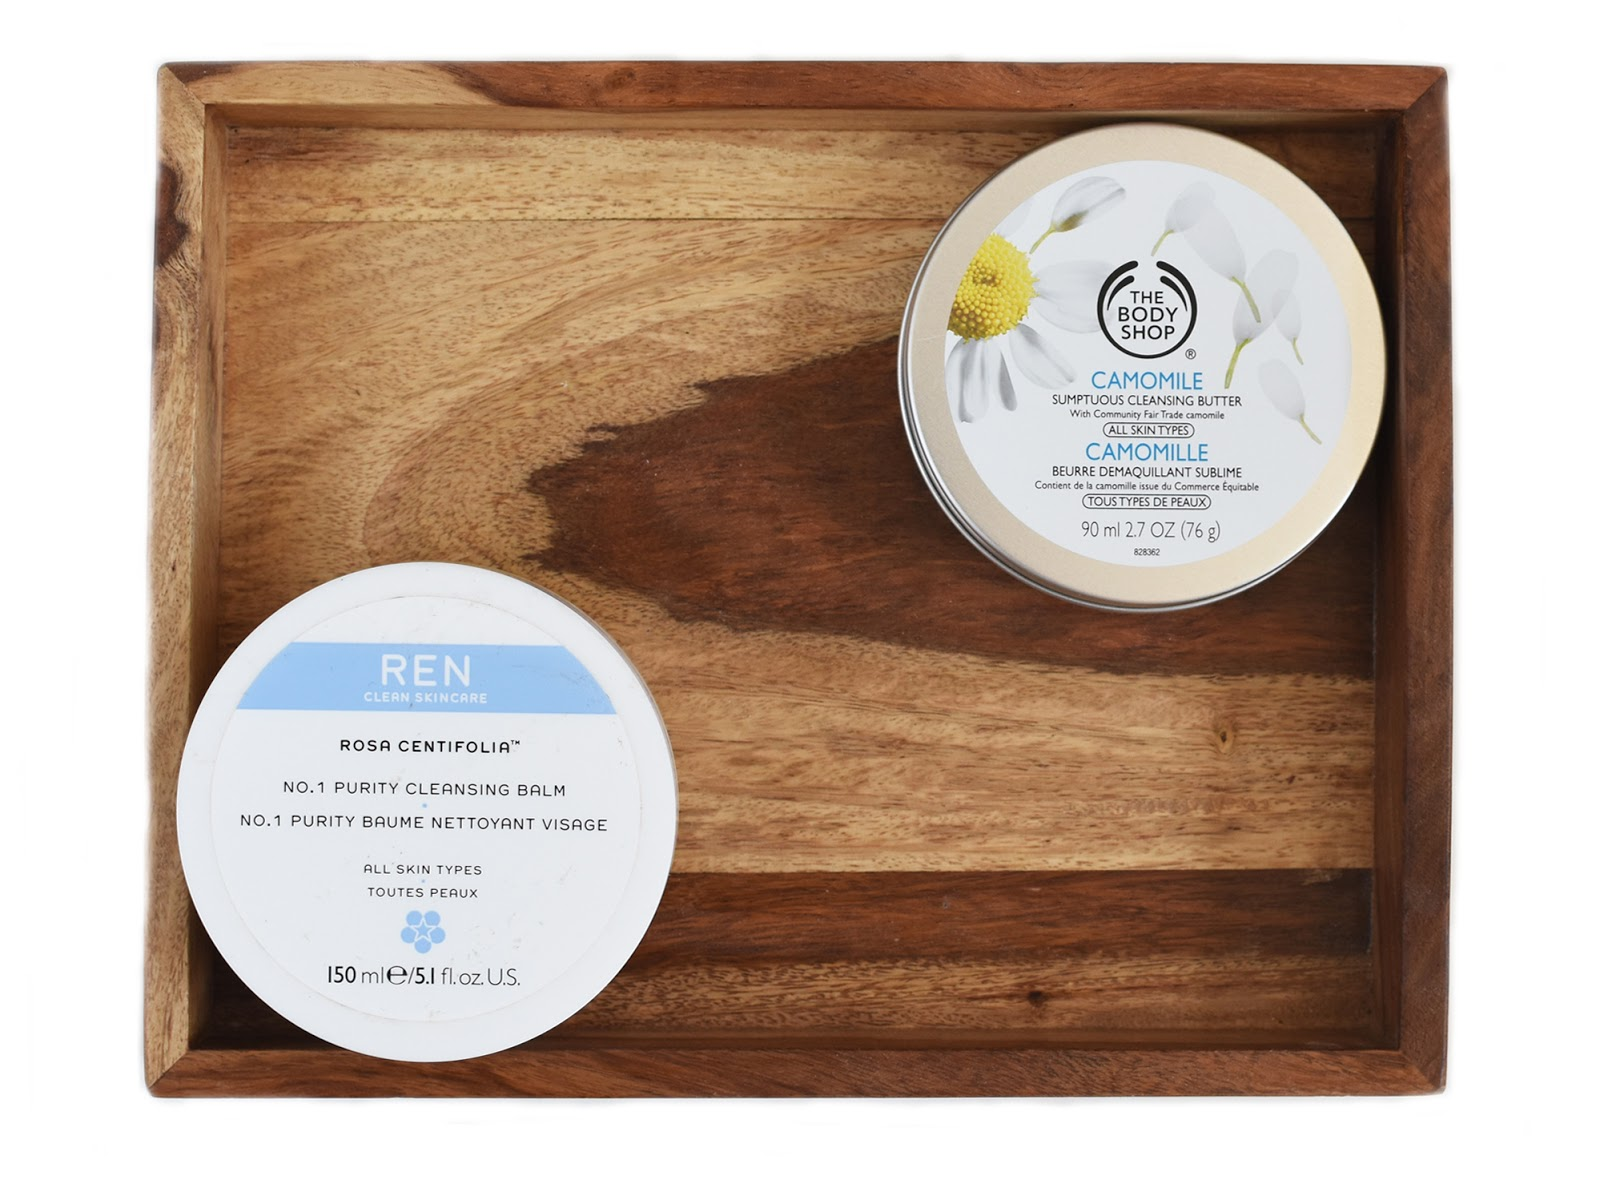 REN's No.1 Purity Cleaning Balm and The Body Shop's Camomile Cleansing Butter